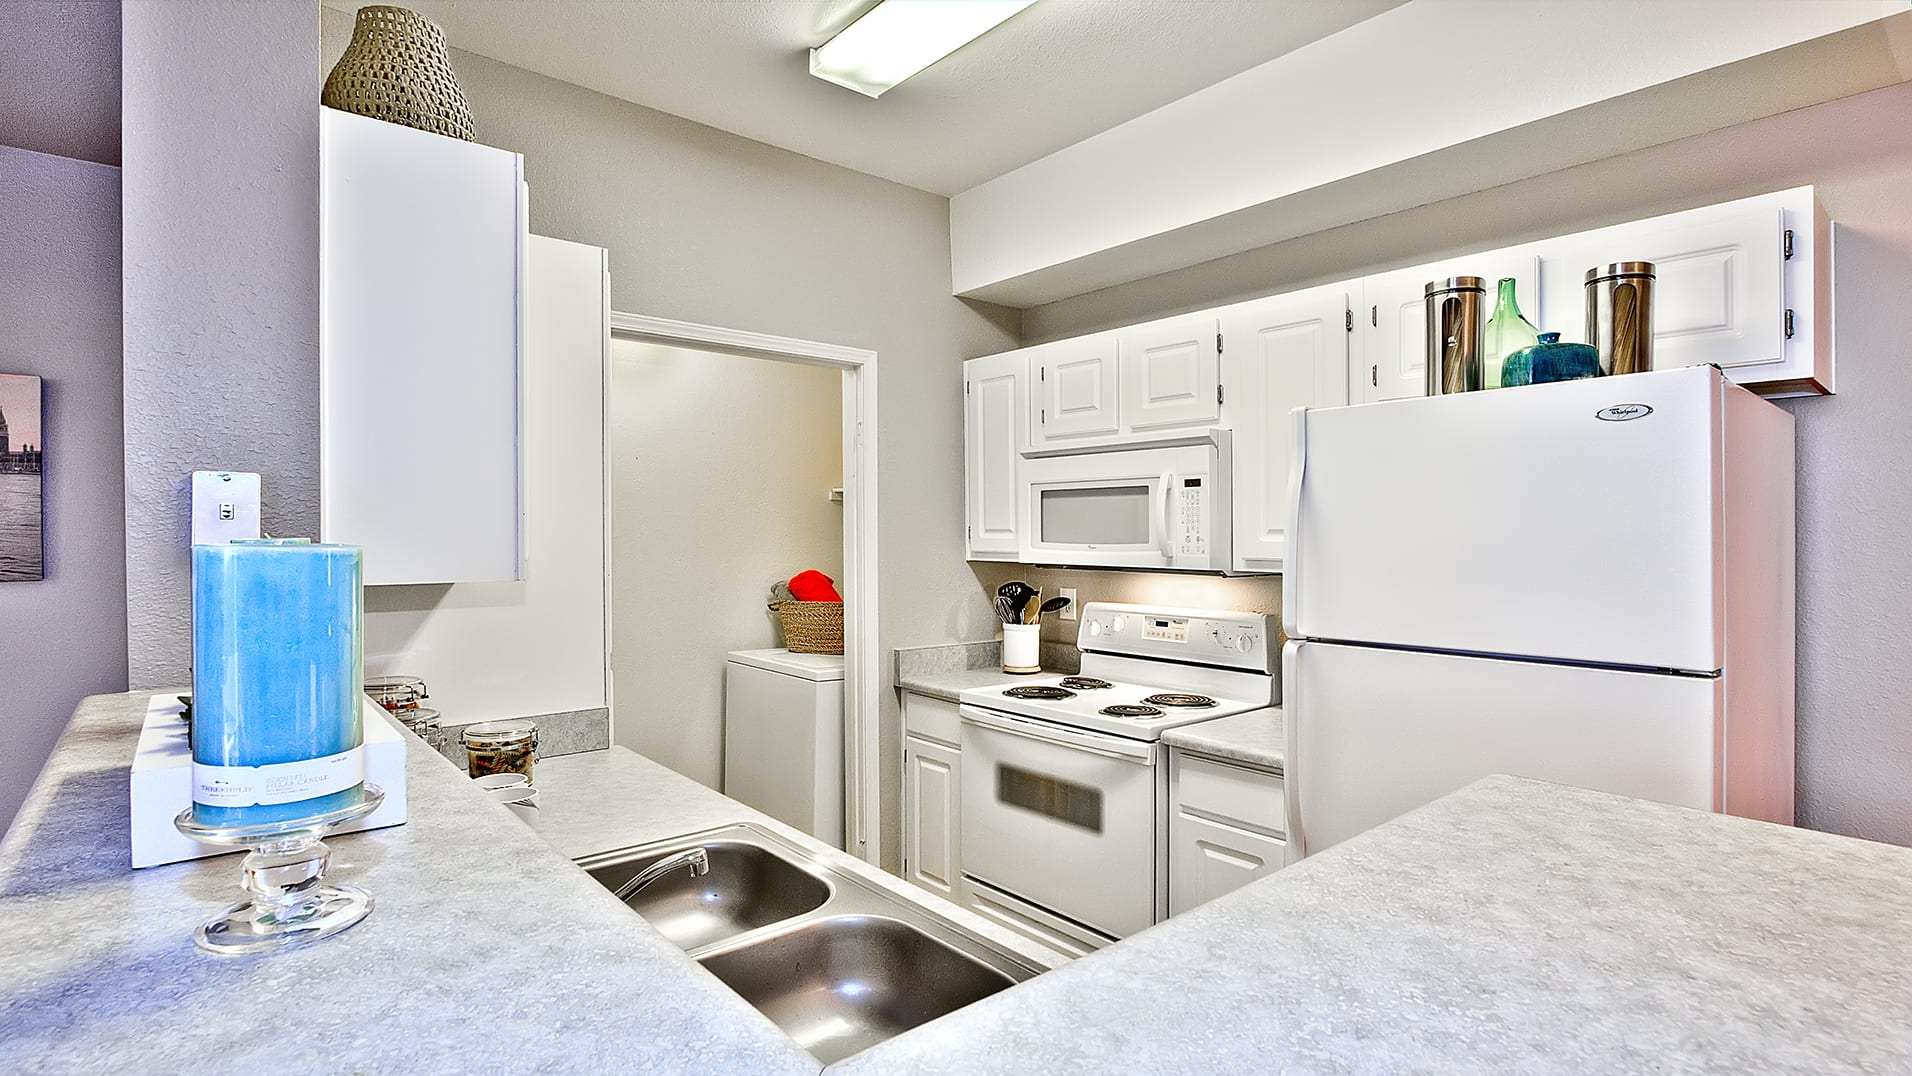 Kitchen with white cabinetry and full appliance package. Through the kitchen is entry to the laundry room.